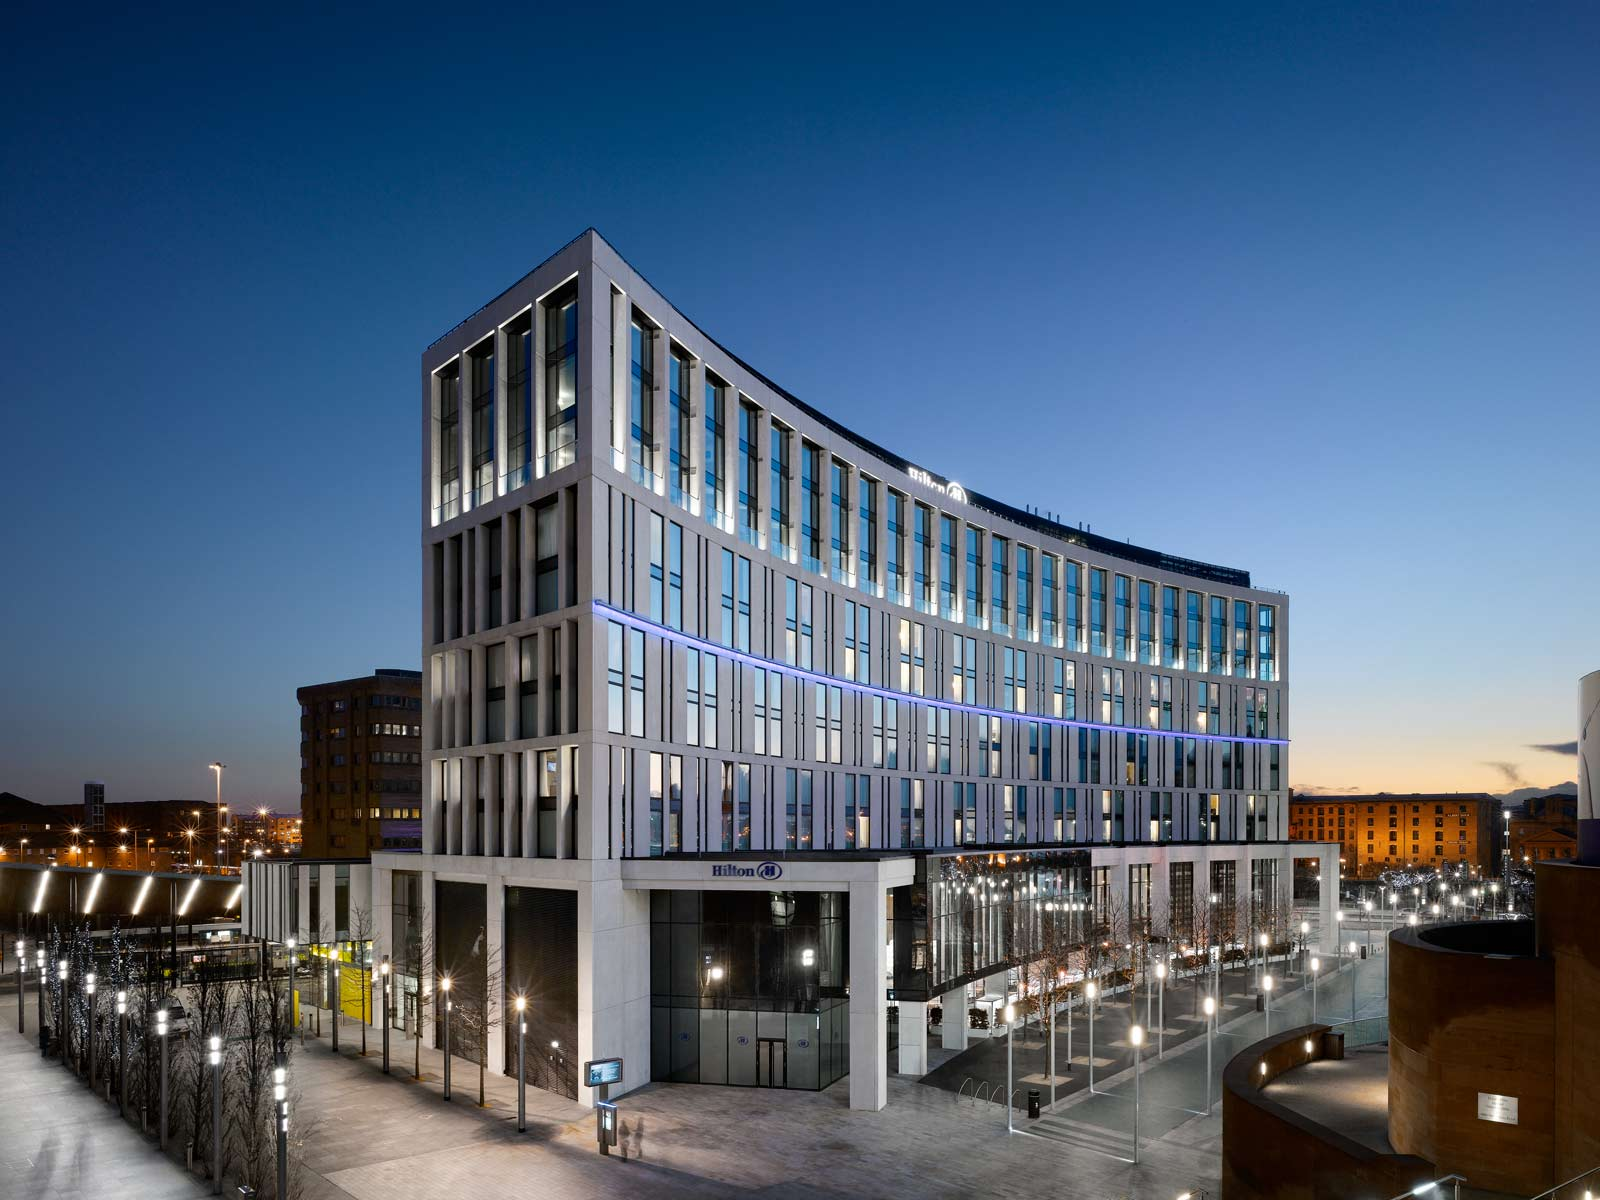 hilton hotel in liverpool uk by aedas awesome architecture. Black Bedroom Furniture Sets. Home Design Ideas